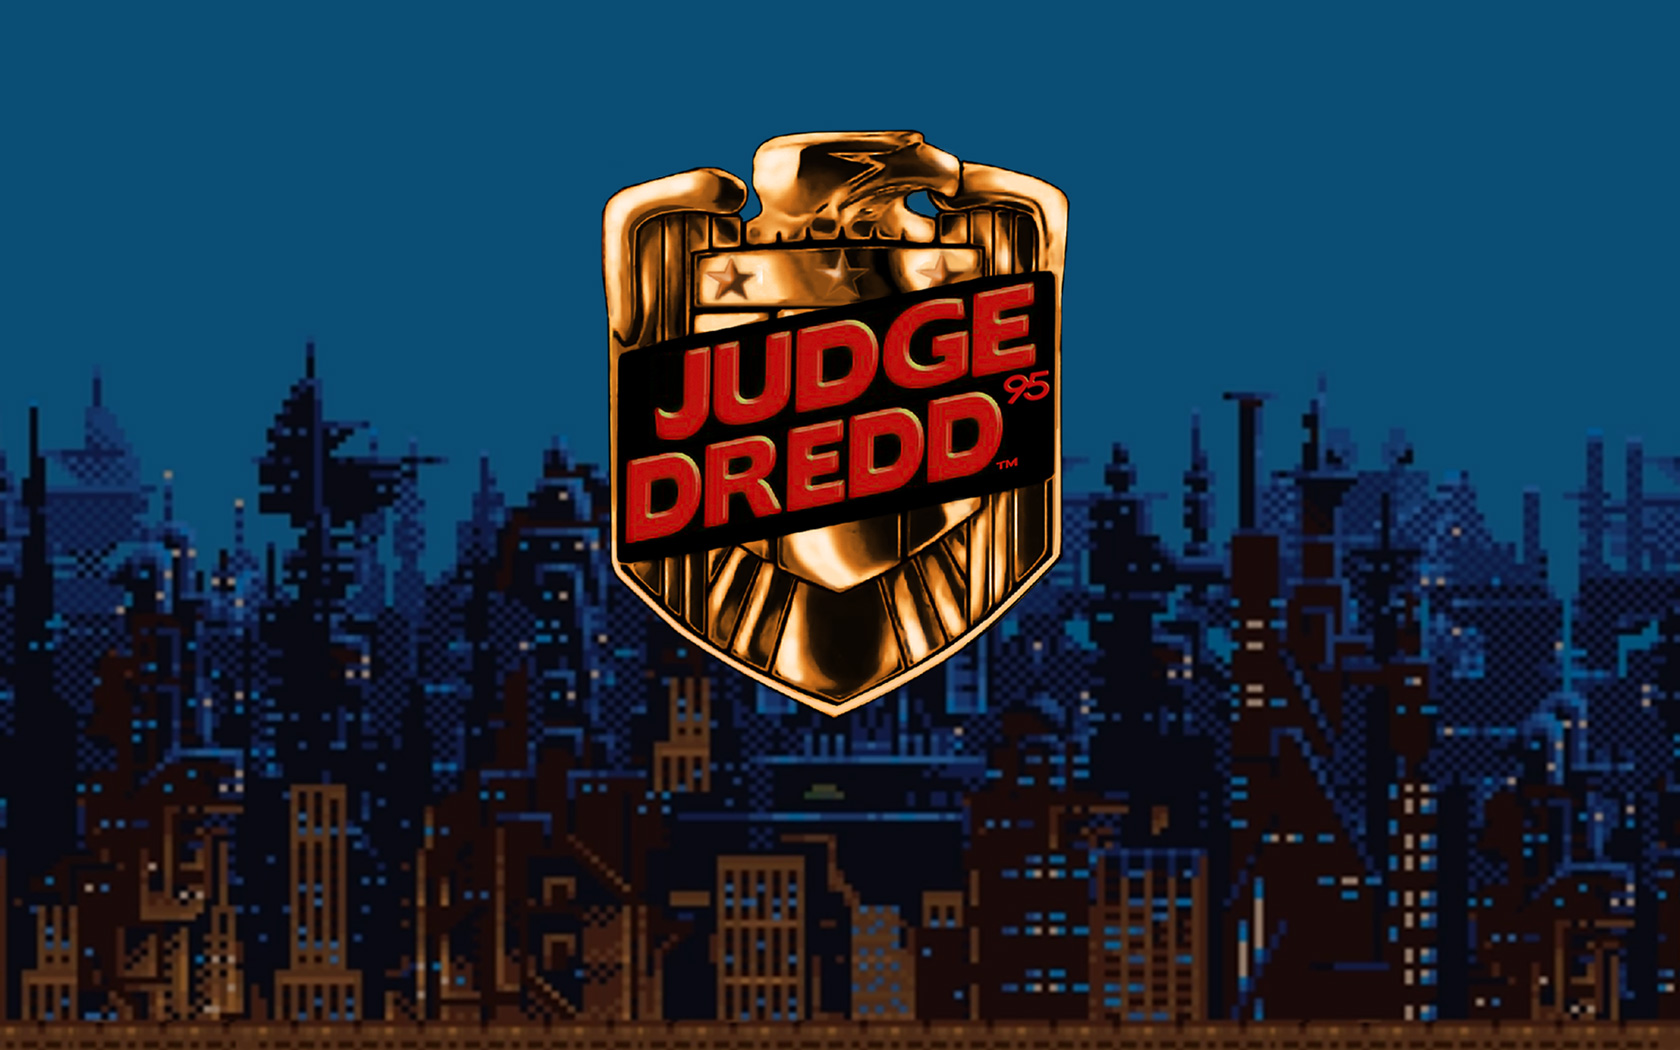 Free Judge Dredd 95 Wallpaper in 1680x1050